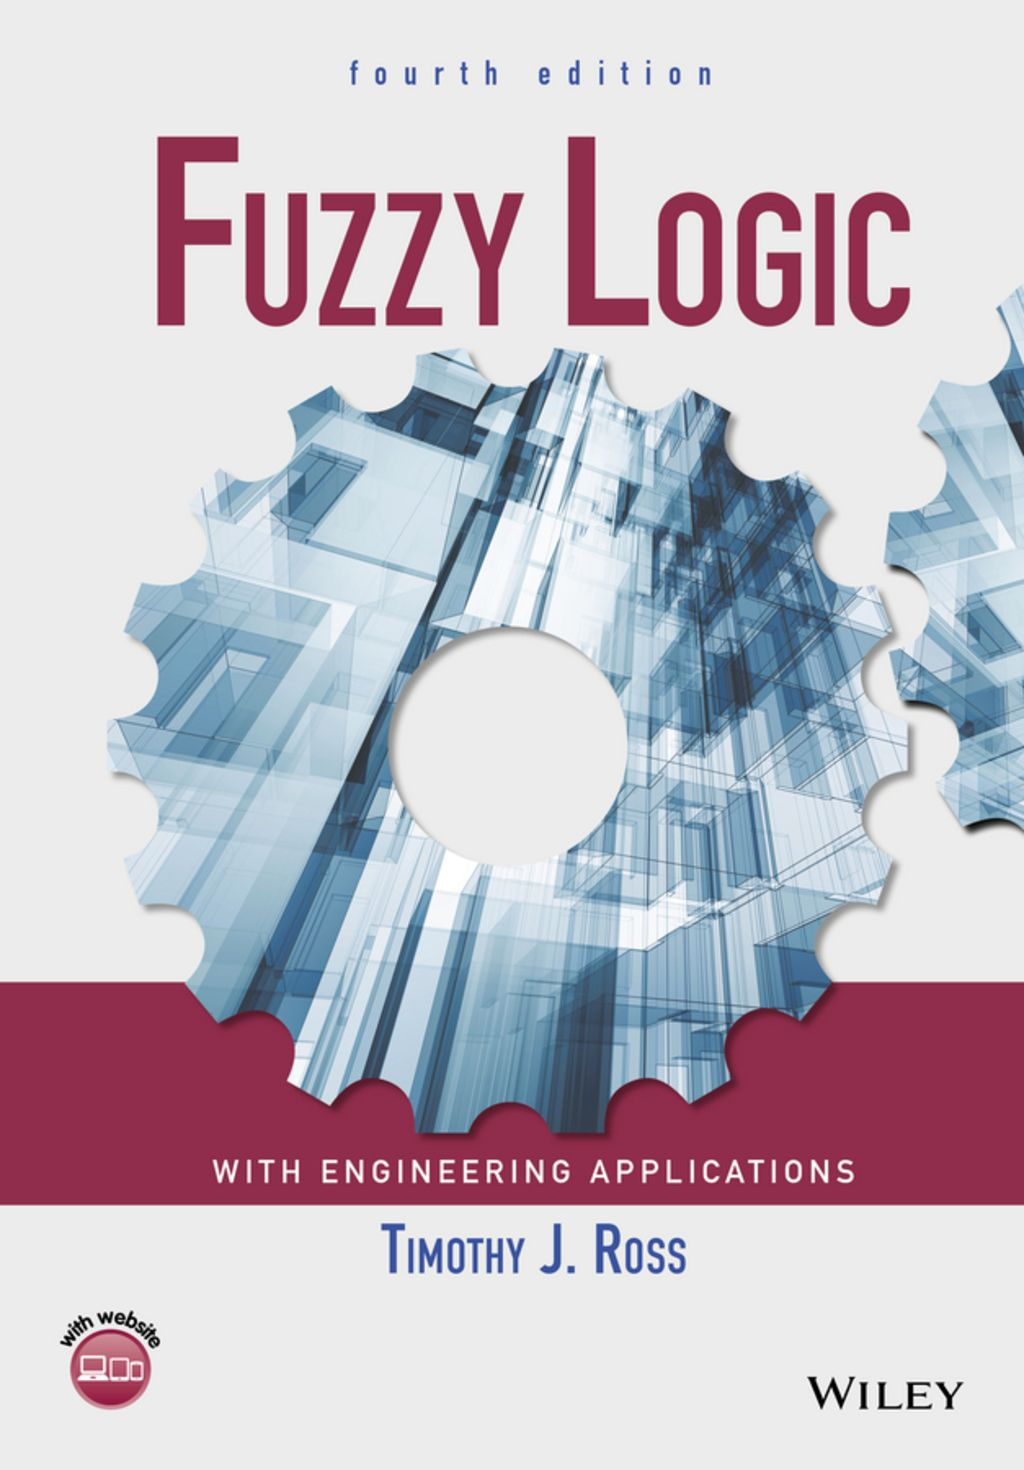 fuzzy logic with engineering applications timothy ross solution manual